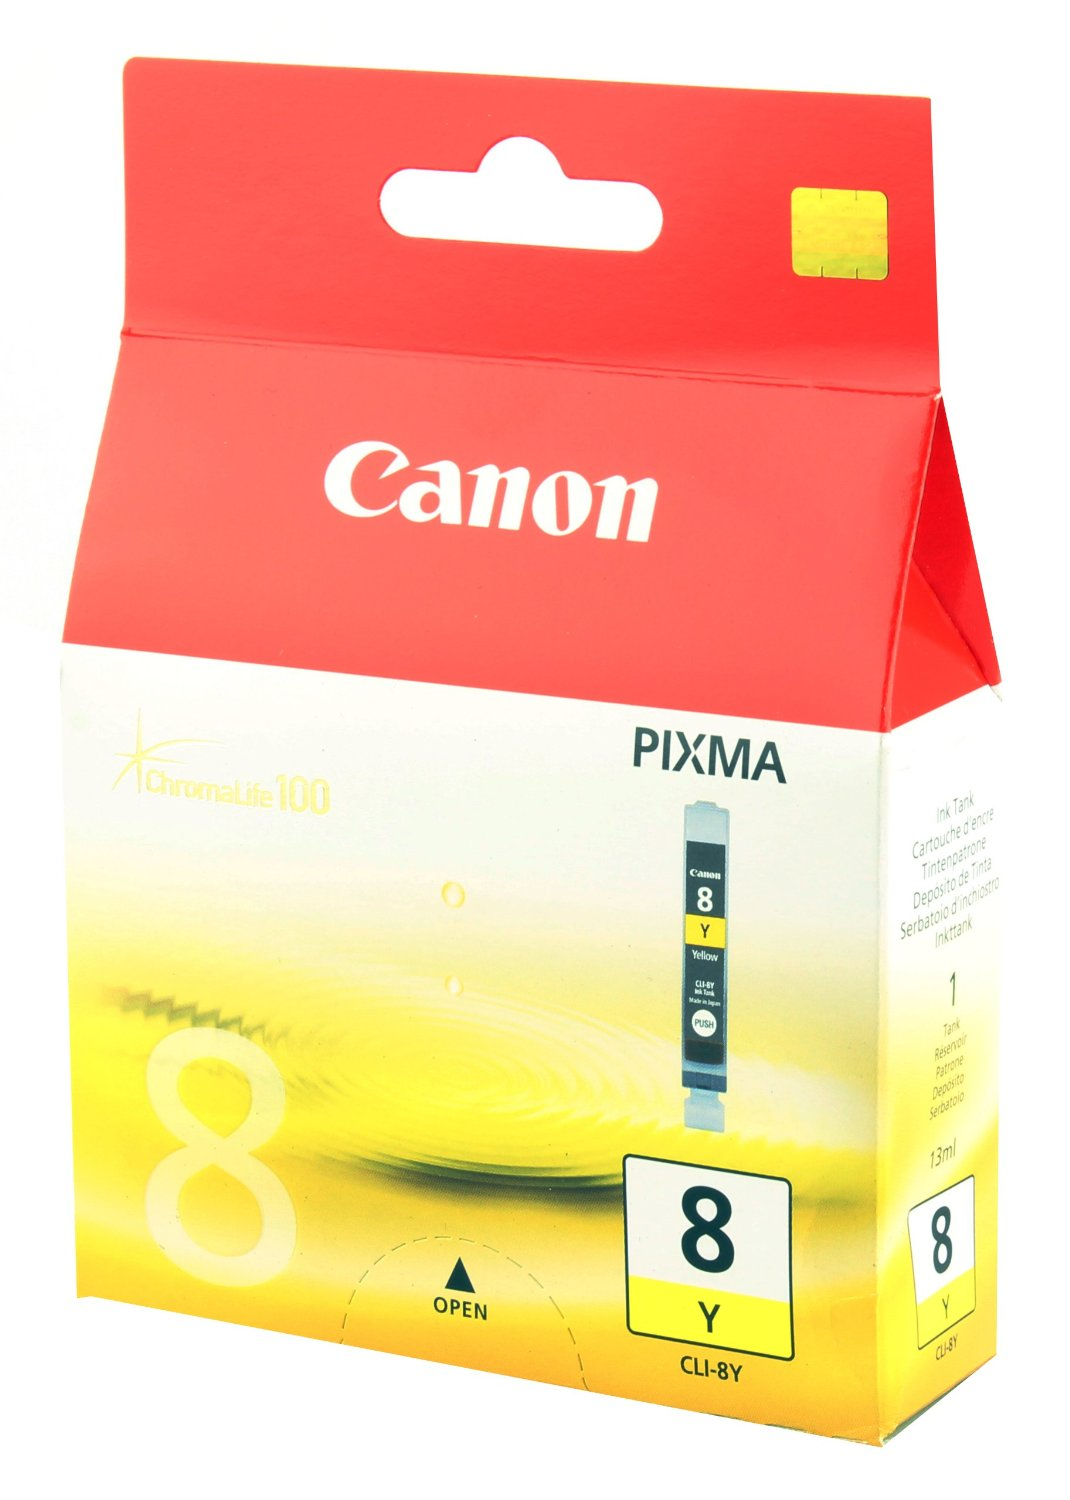 Canon CLi-8Y yellow ink , 490 pages - for pixma ip3300, ip3500, ip4200,  ip4300, ip4500, ip5200, ip5300, ip6600d, ip6700D, pro9000MP500, MP510, MP520, MP530, MP600, MP600, MP610, MP610, MX700, MX850, MP800, MP810, MP830, MP970ix4000, ix5000